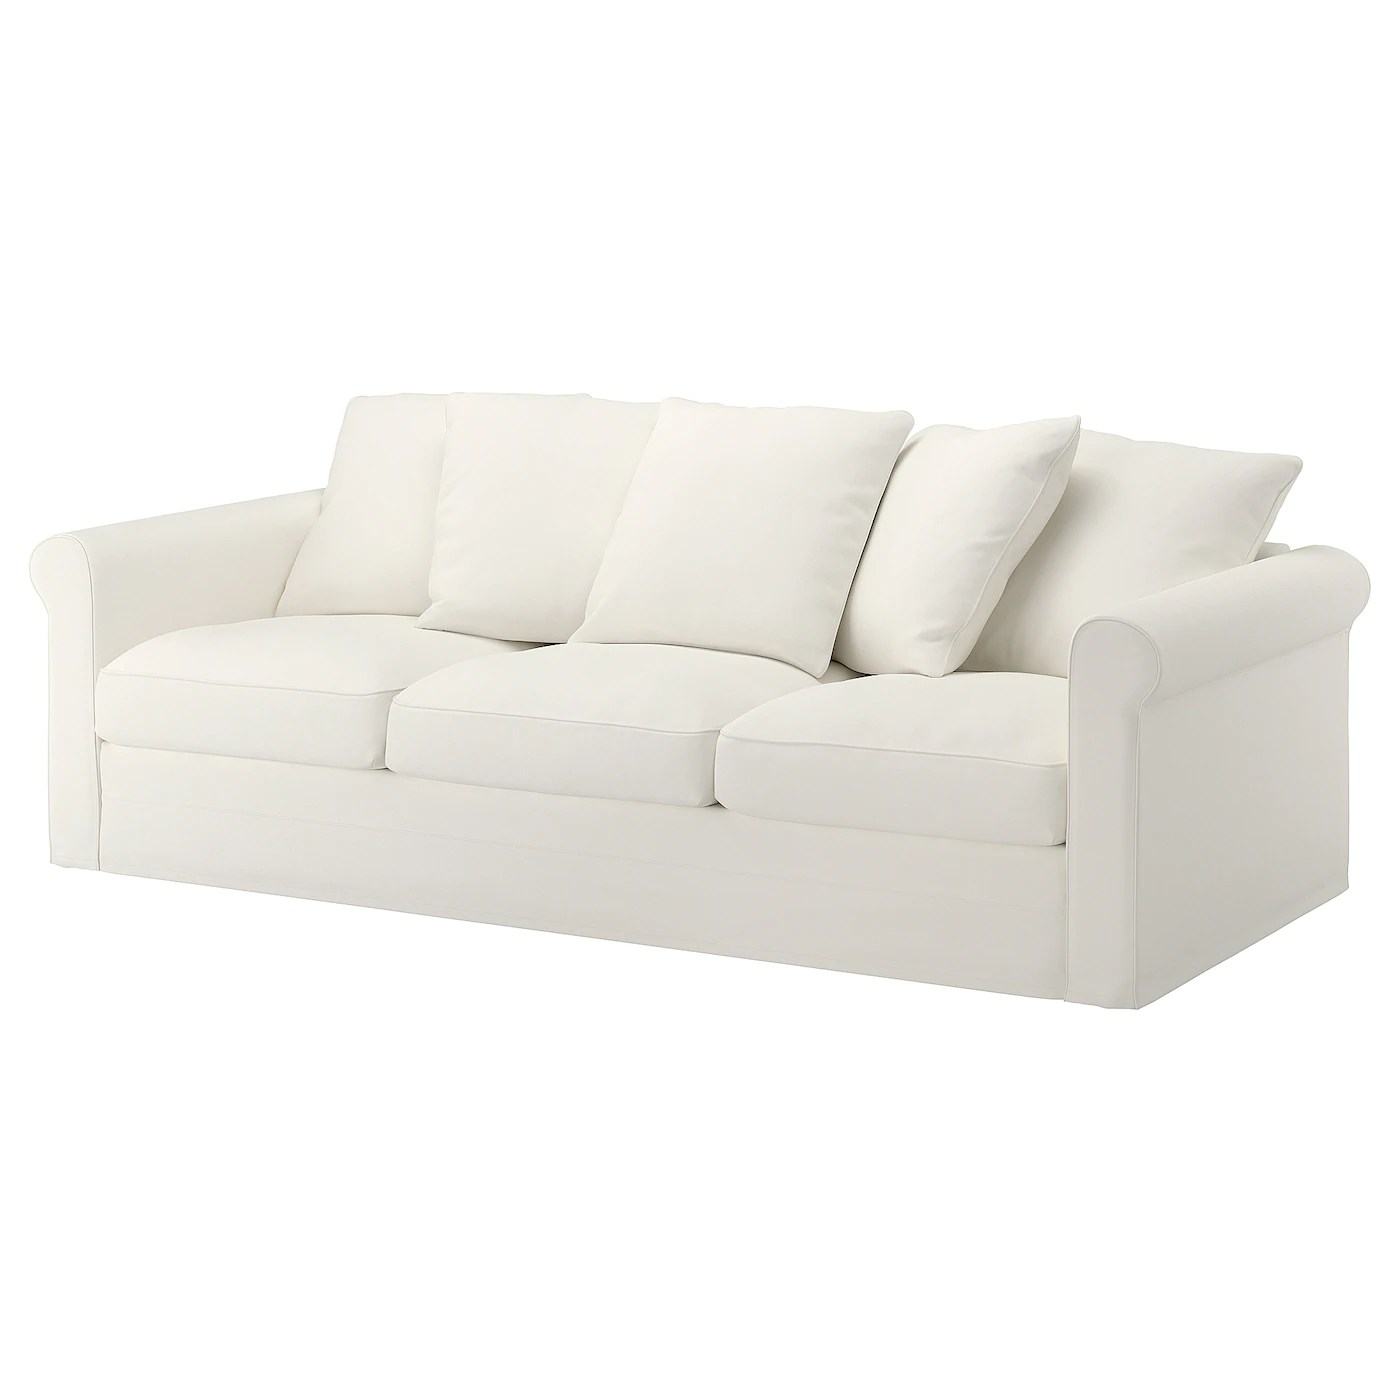 sofa 10 year guarantee types of sectional sofas 3 seater ikea